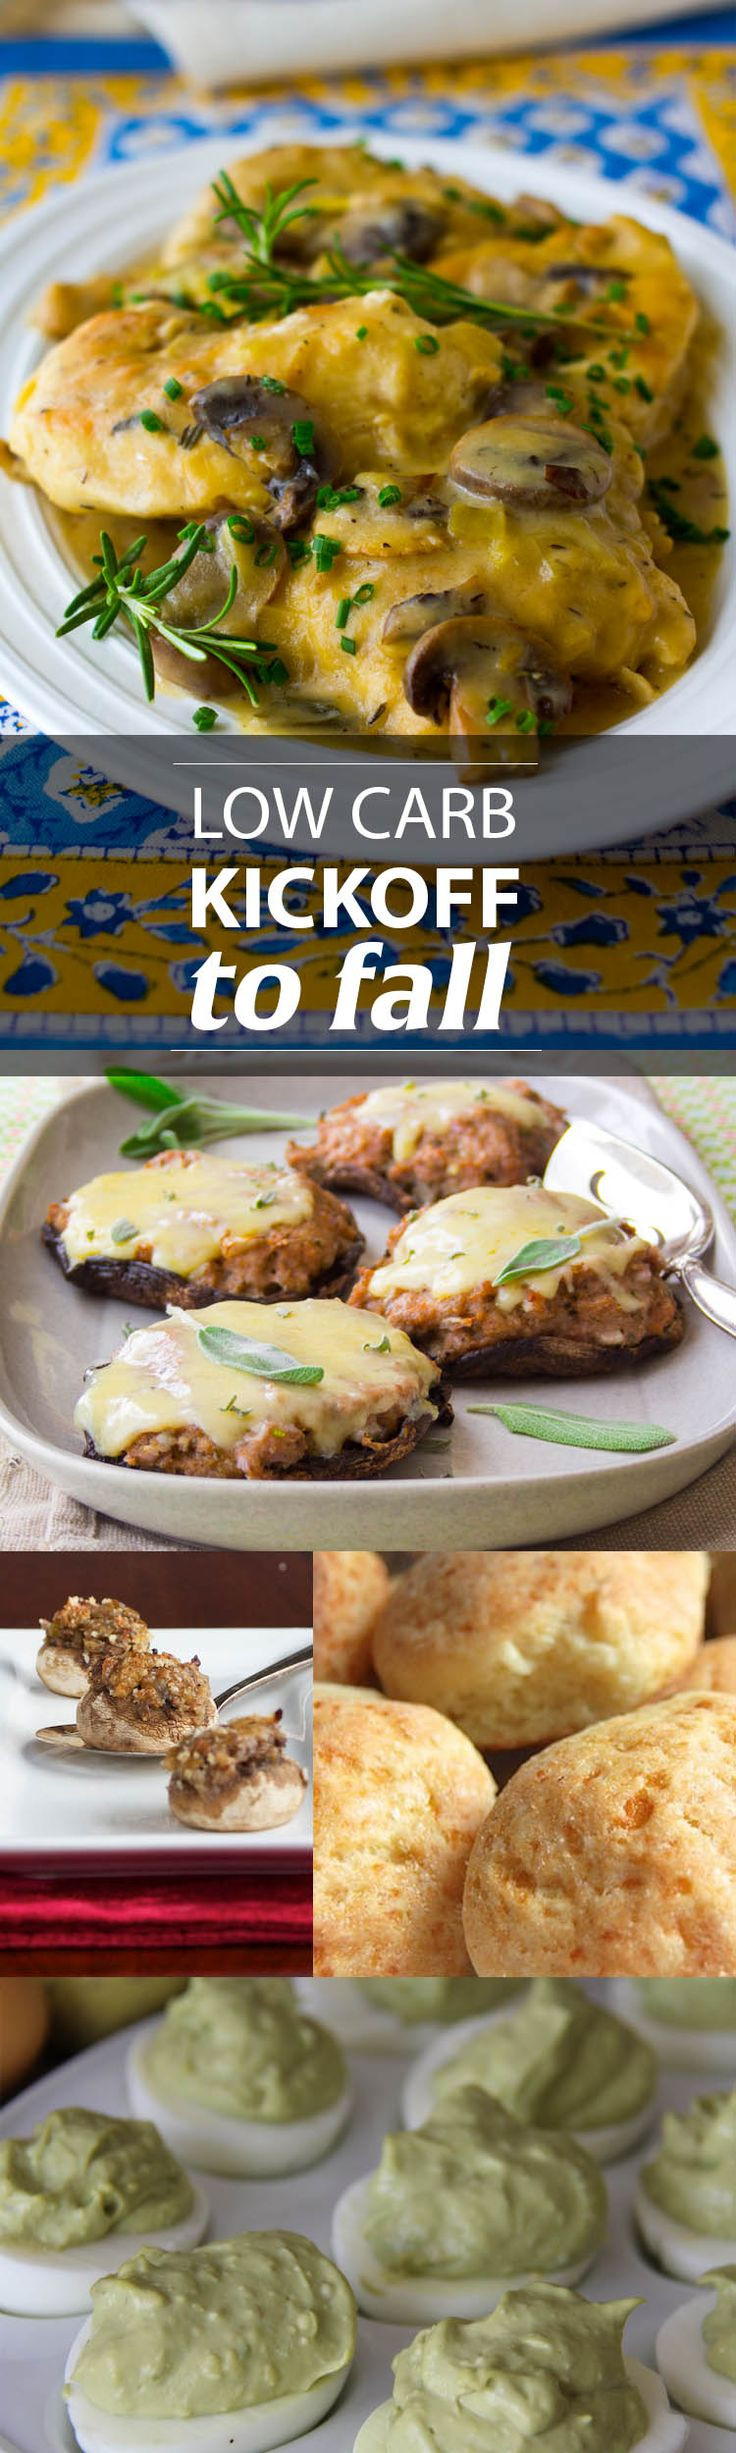 Low Carb Fall Recipes  17 Best images about No carb meal ideas on Pinterest